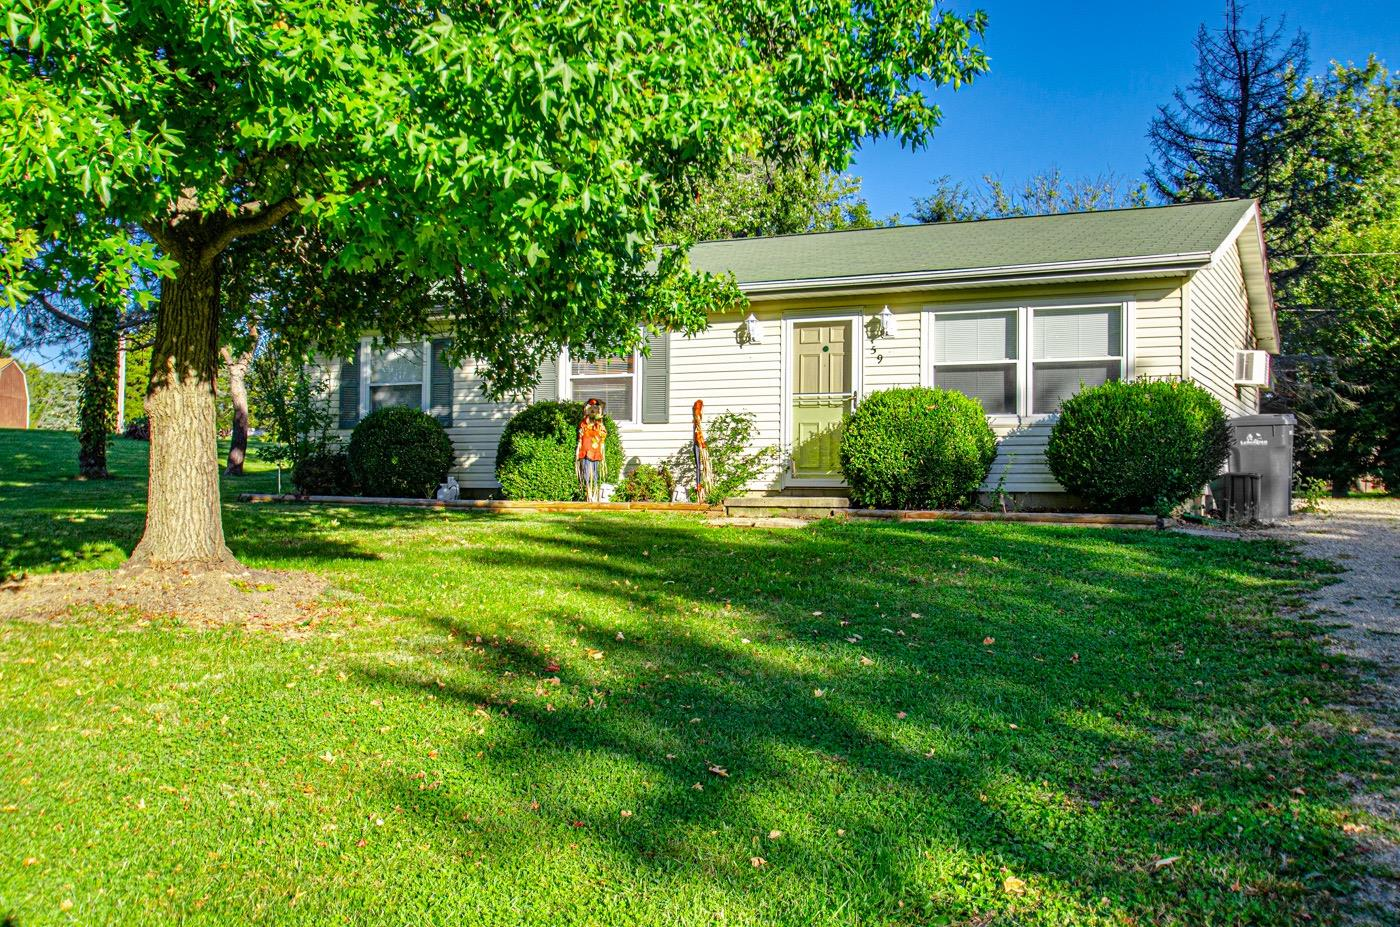 59 Iceland Drive, Eaton, Ohio 45320, 2 Bedrooms Bedrooms, 5 Rooms Rooms,1 BathroomBathrooms,Single Family Residence,For Sale,Iceland,1719461